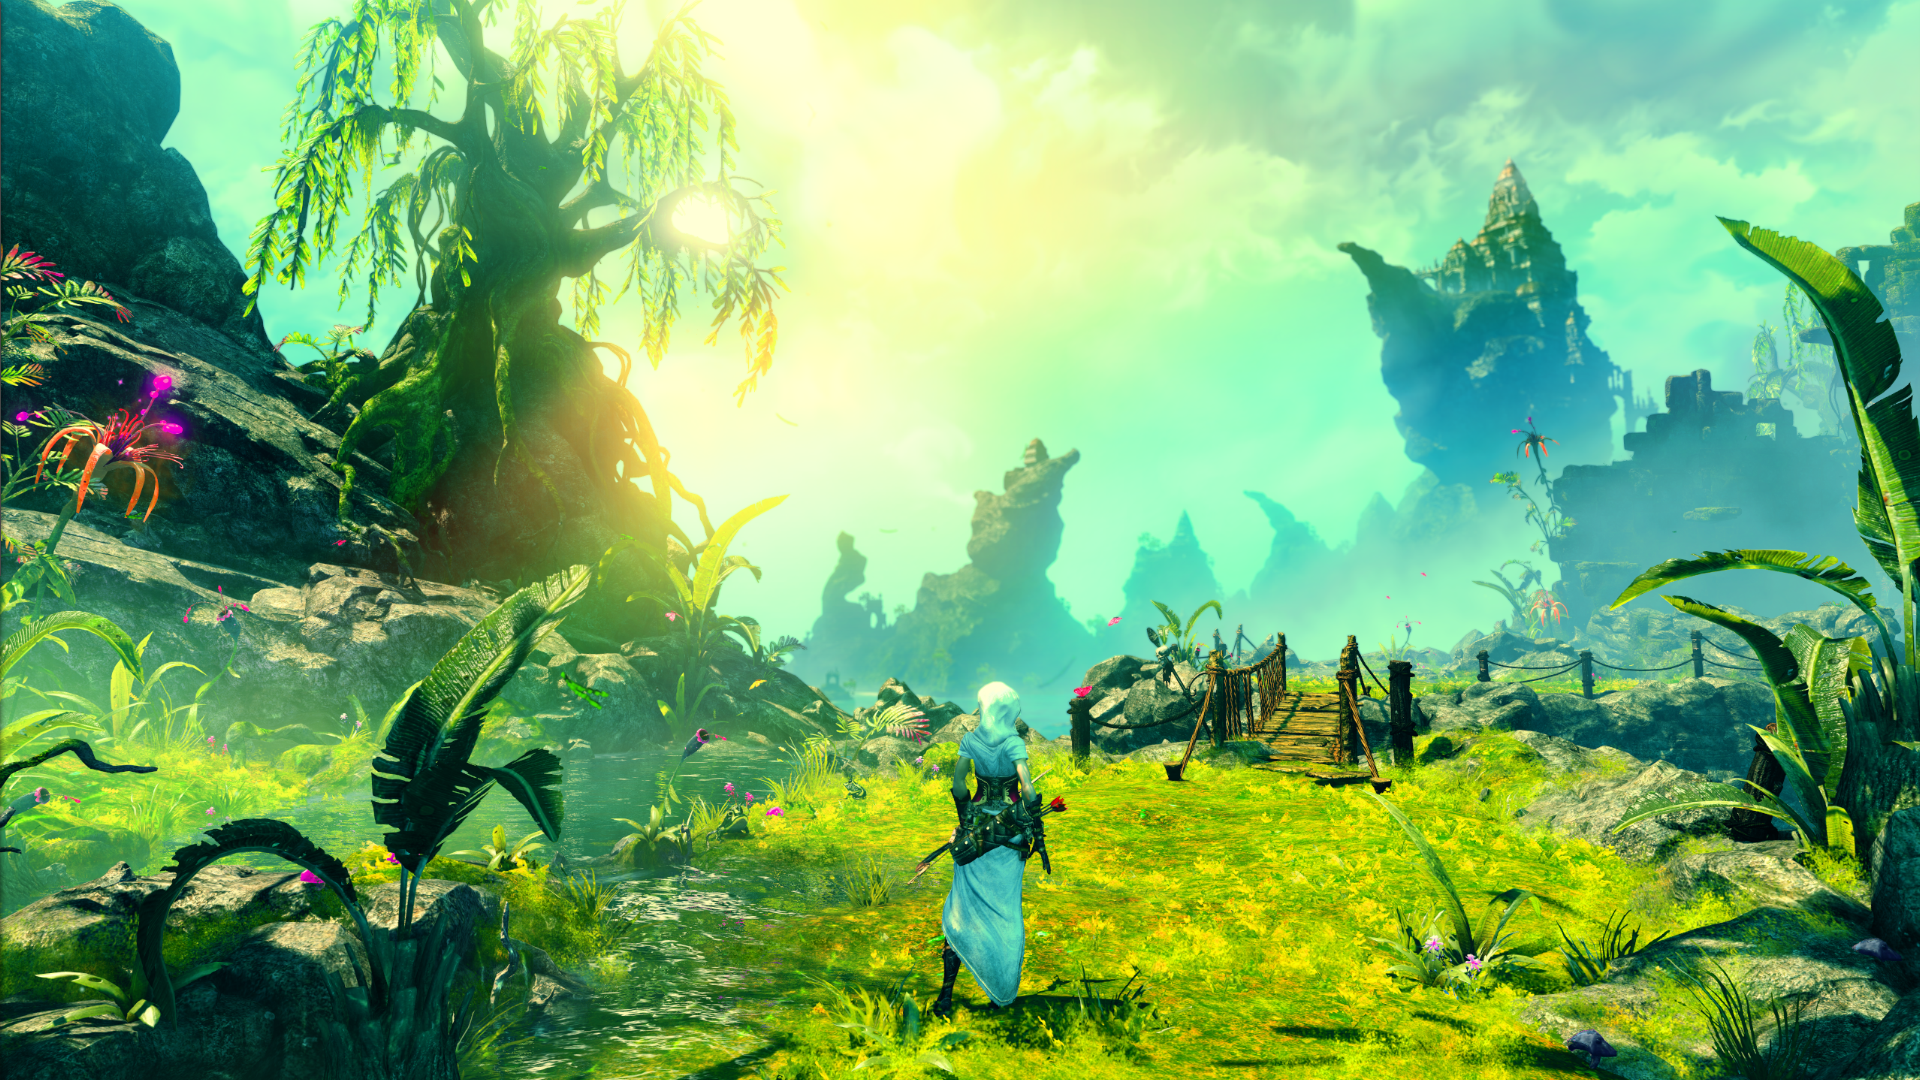 Our First Look at the Next Trine